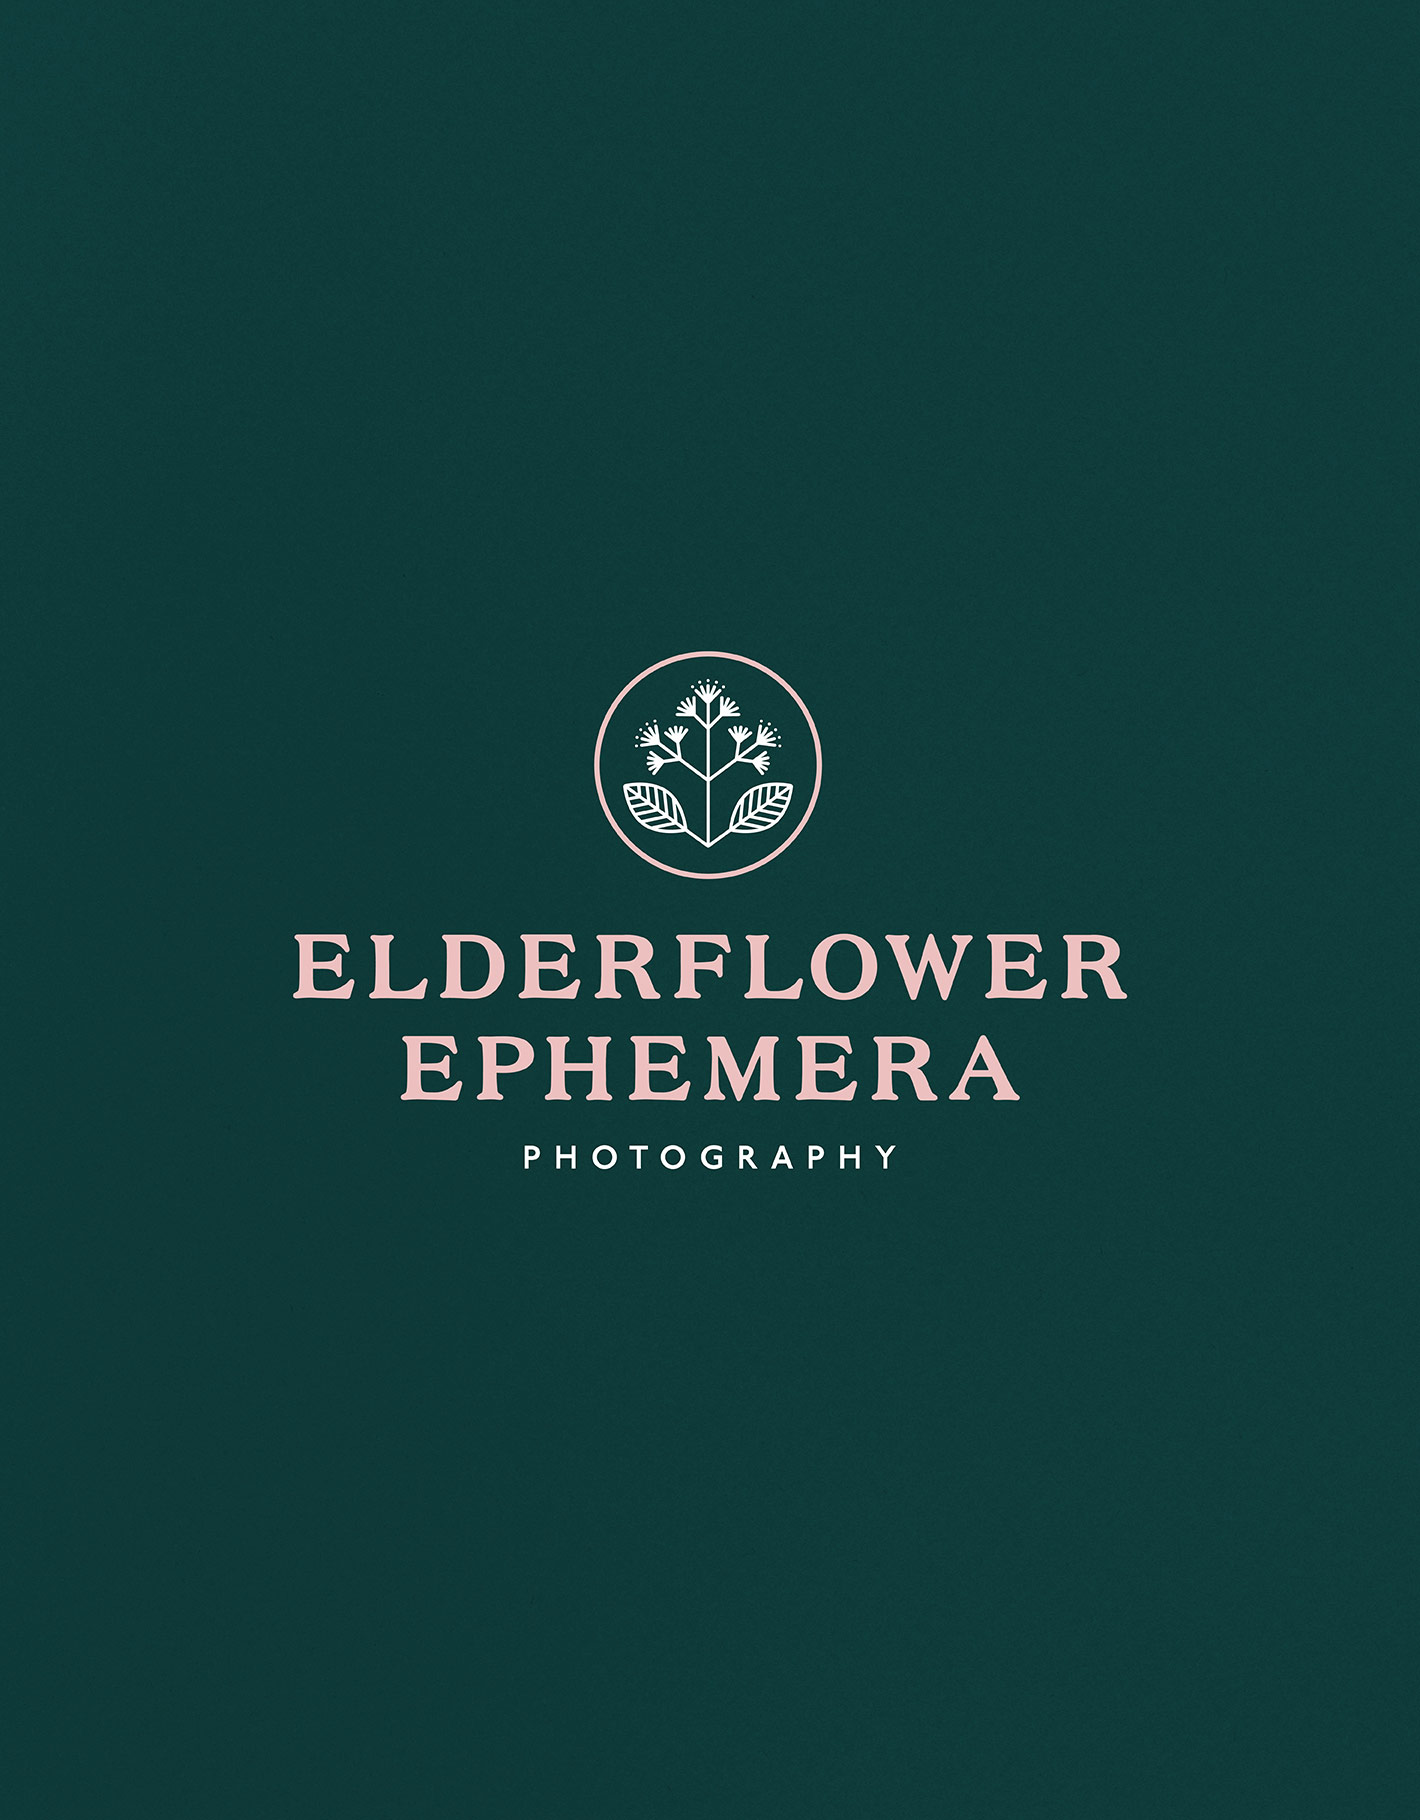 Floral icon and serif logotype for elderflower ephemera